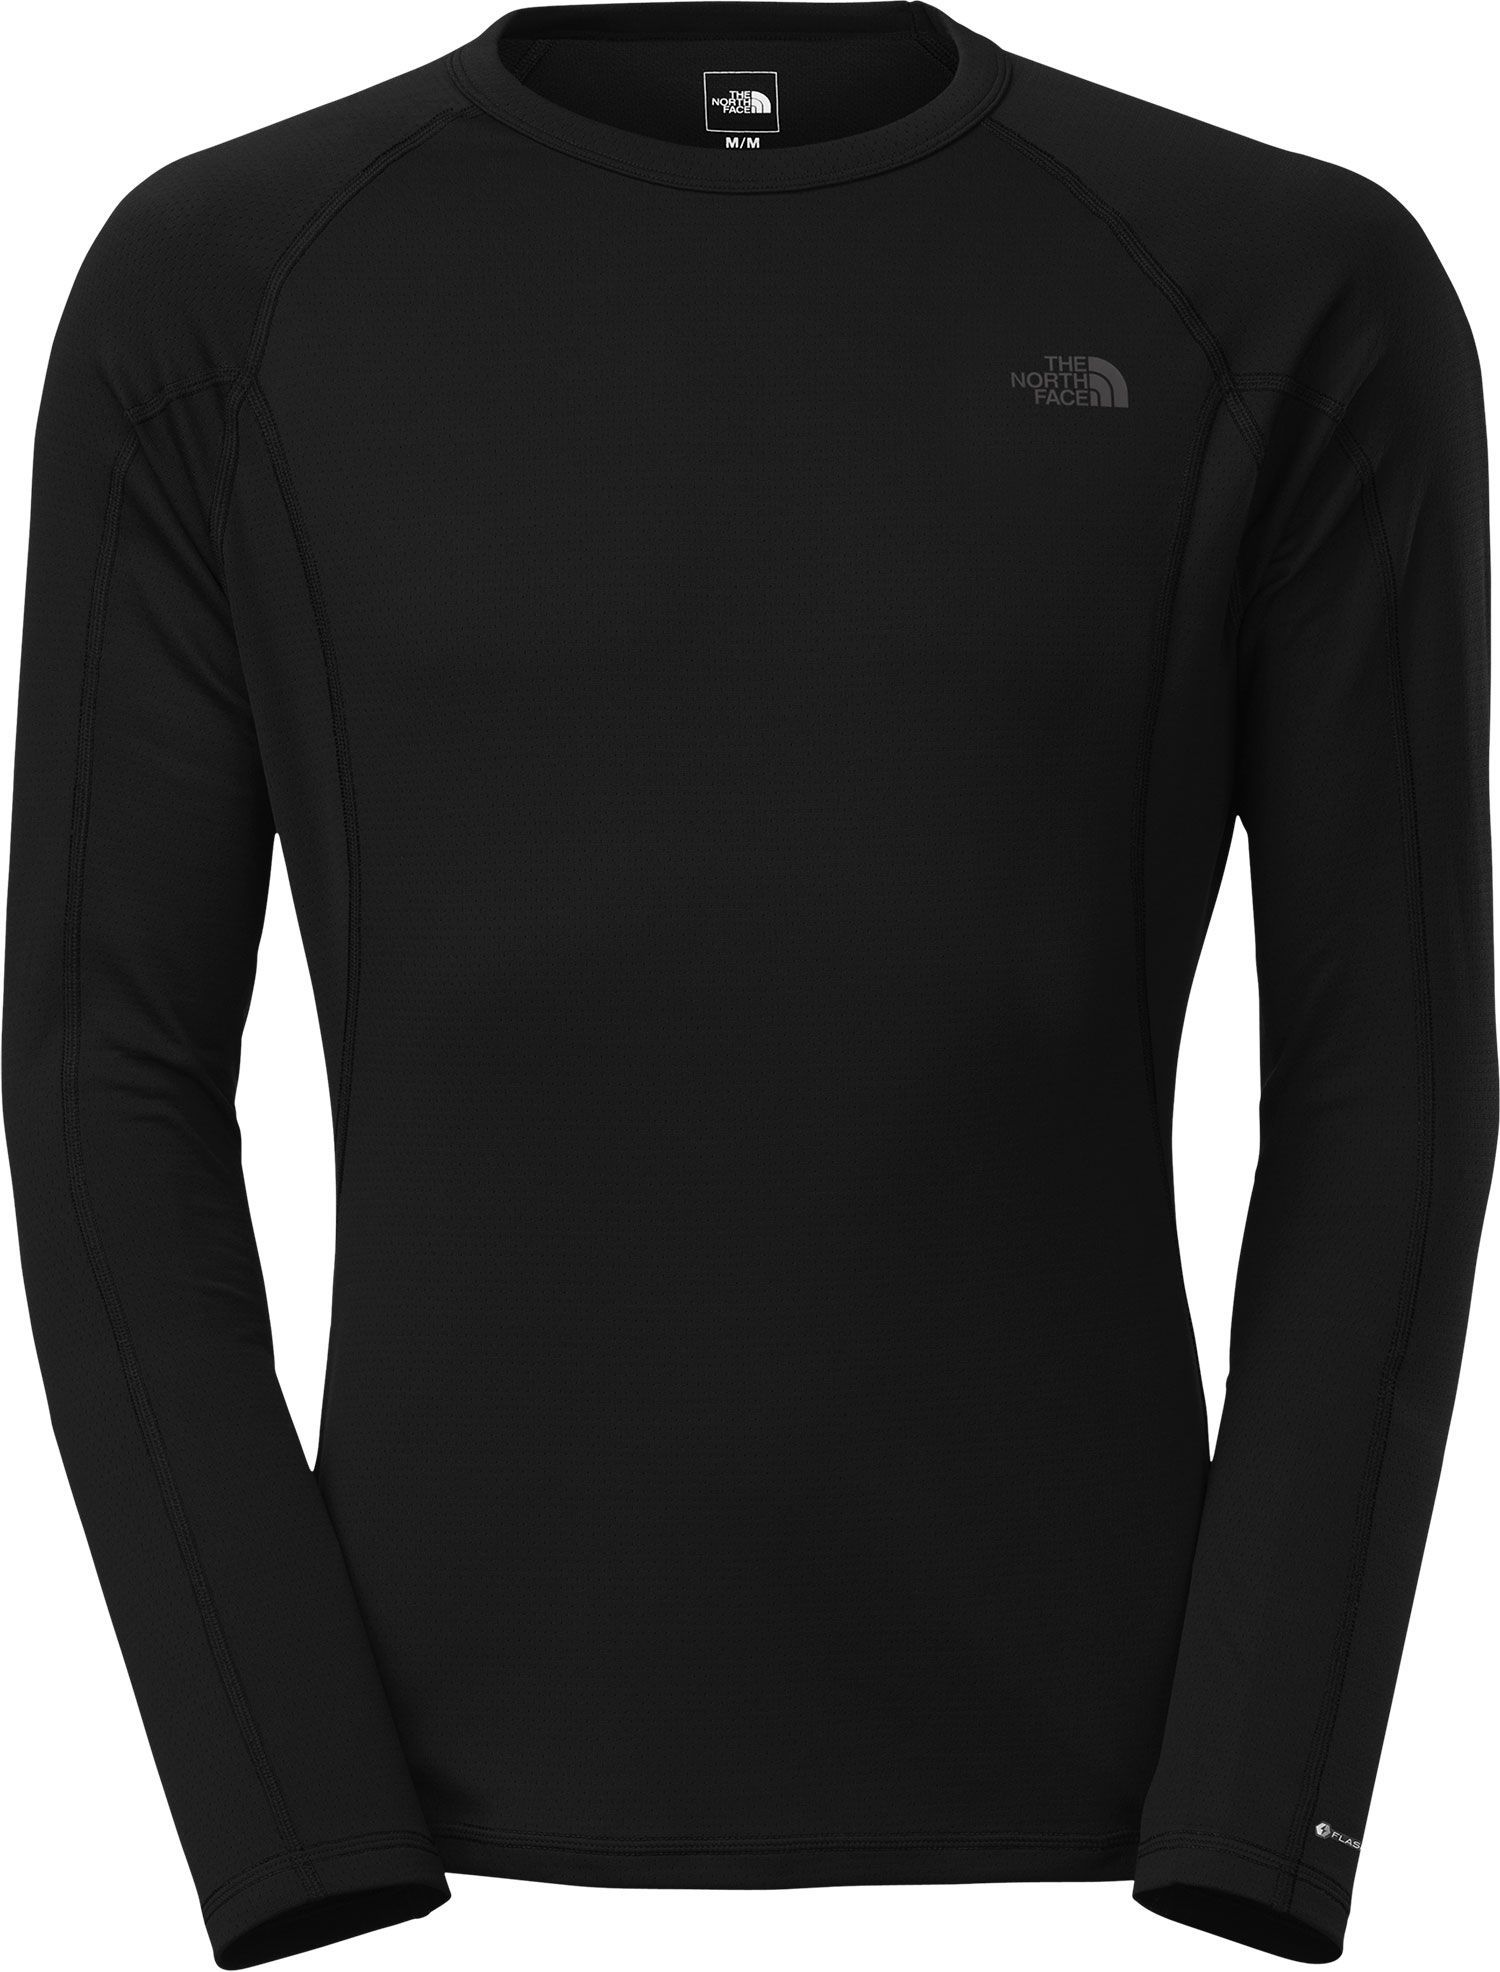 e6c95ebc8 The North Face Men's Long Sleeve Crew Neck Baselayer Shirt ...